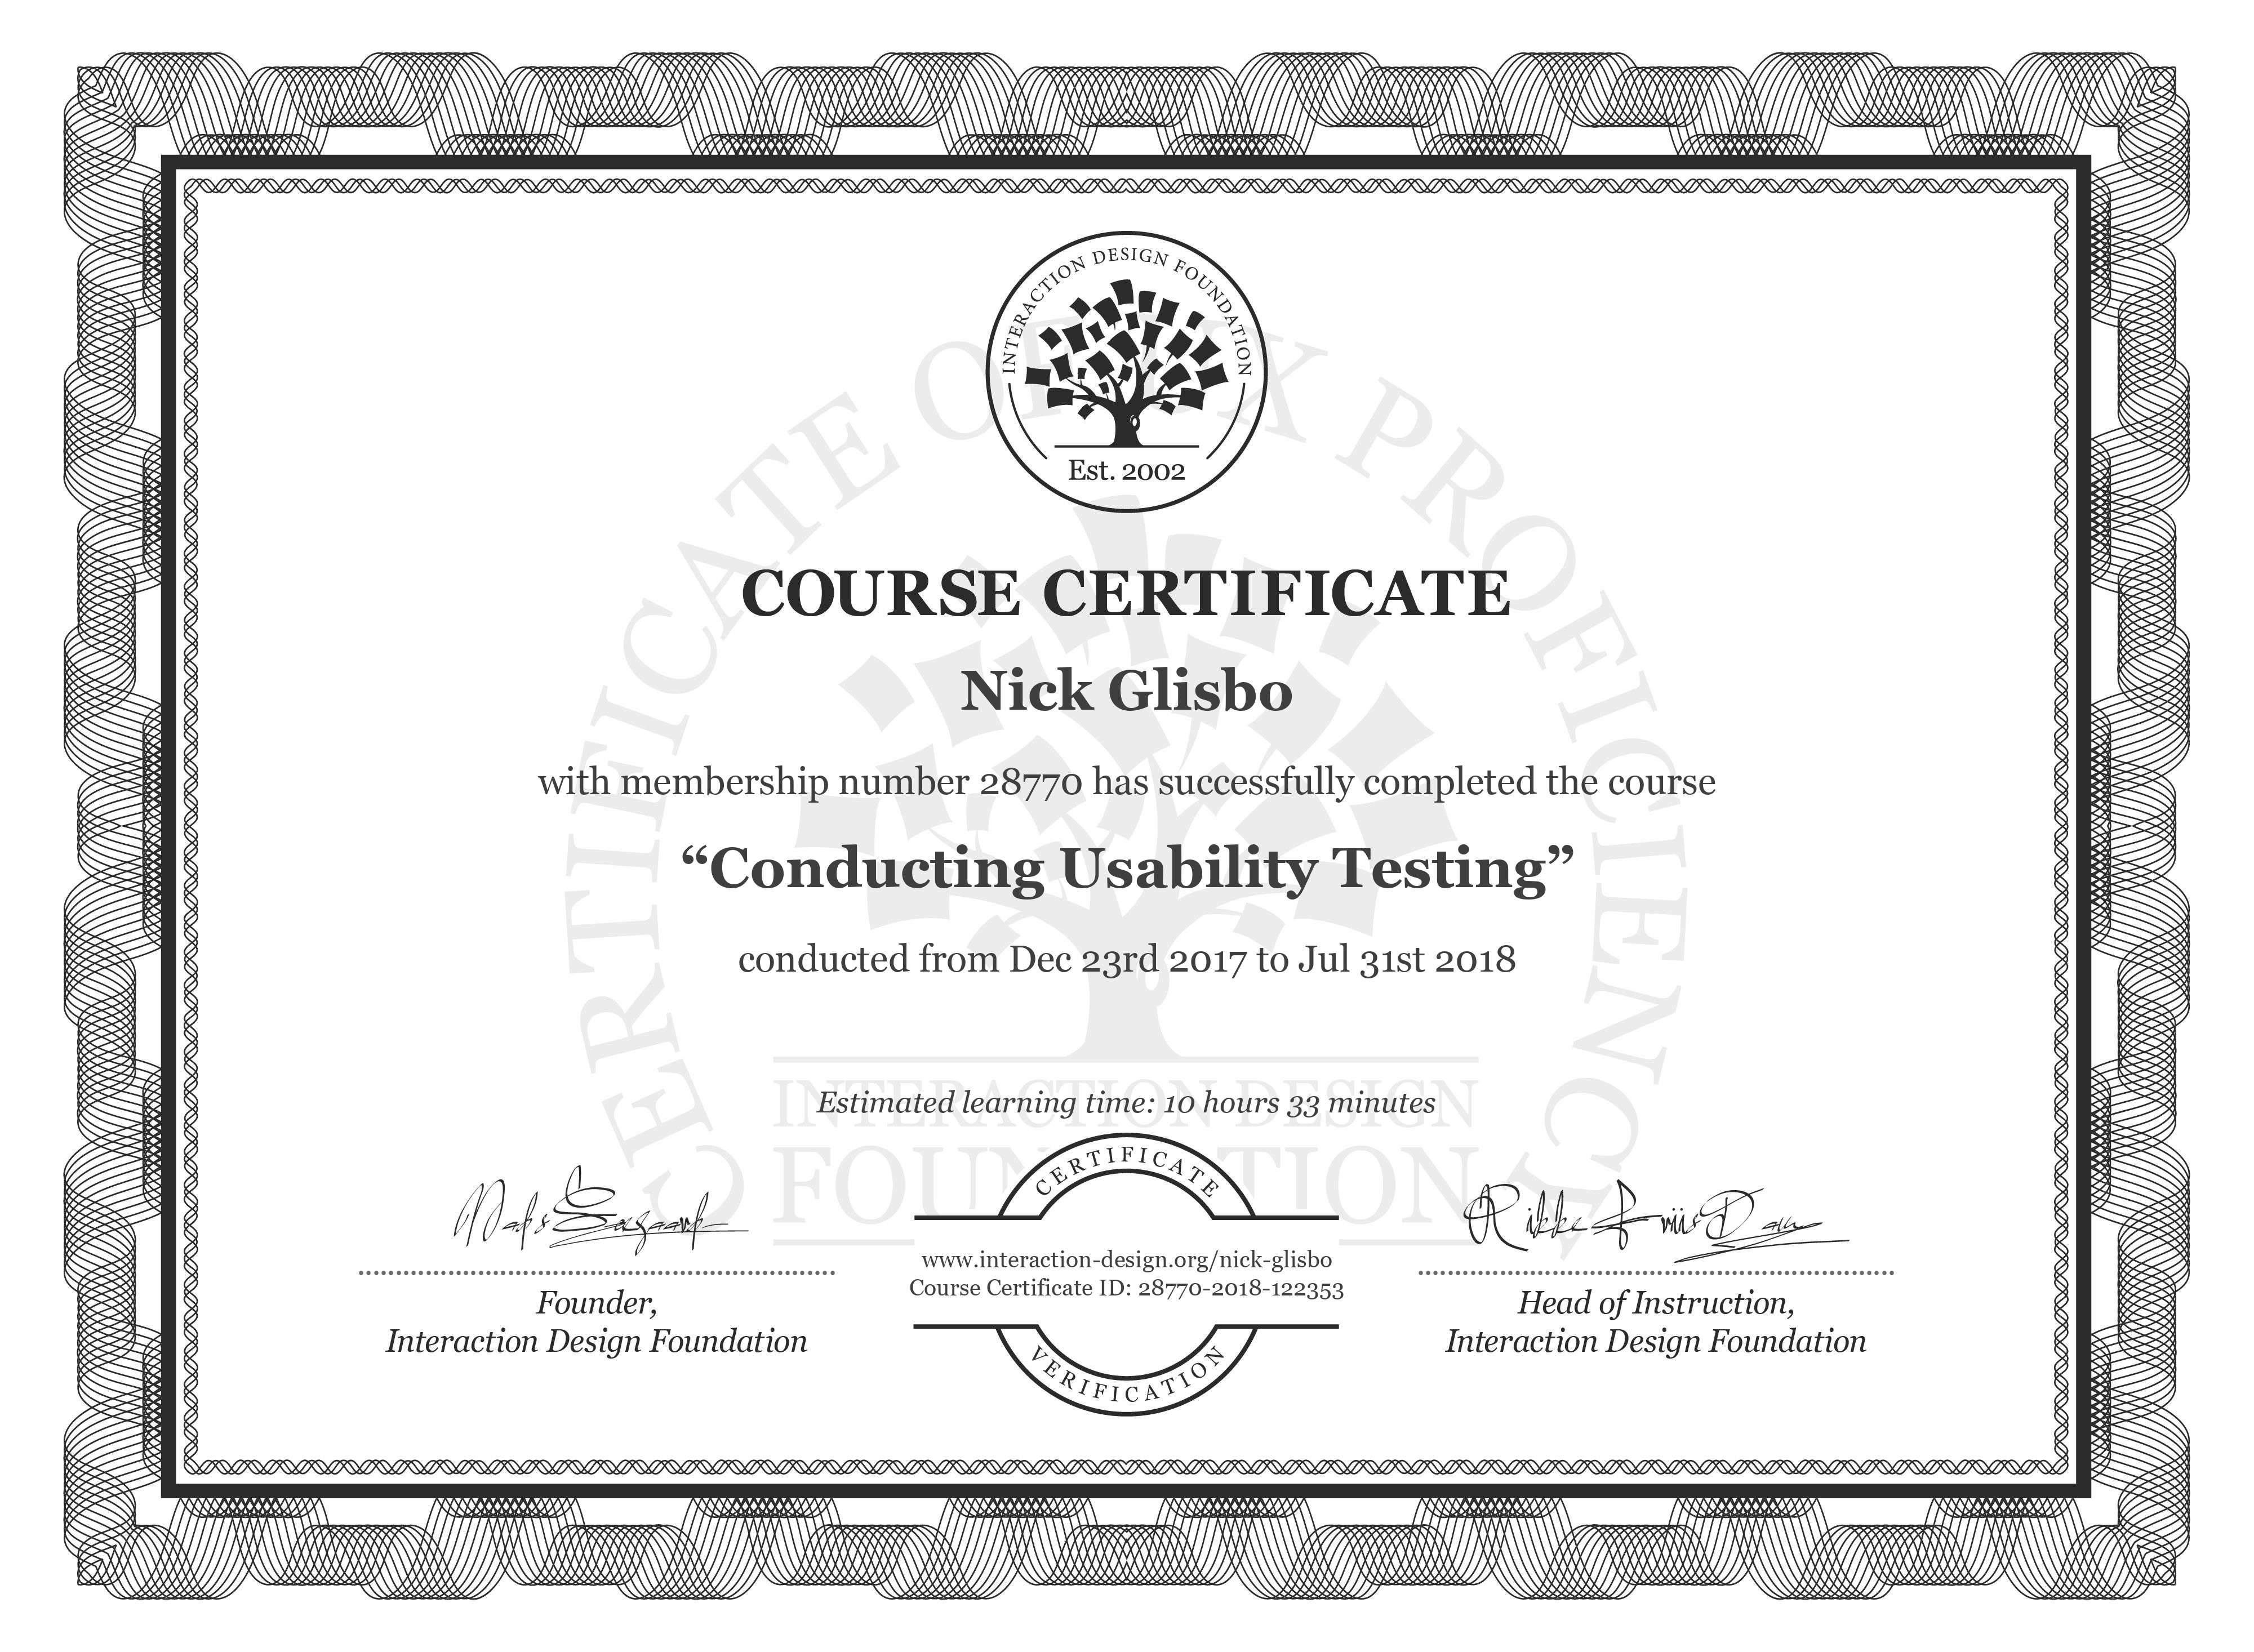 Nick Glisbo: Course Certificate - Conducting Usability Testing